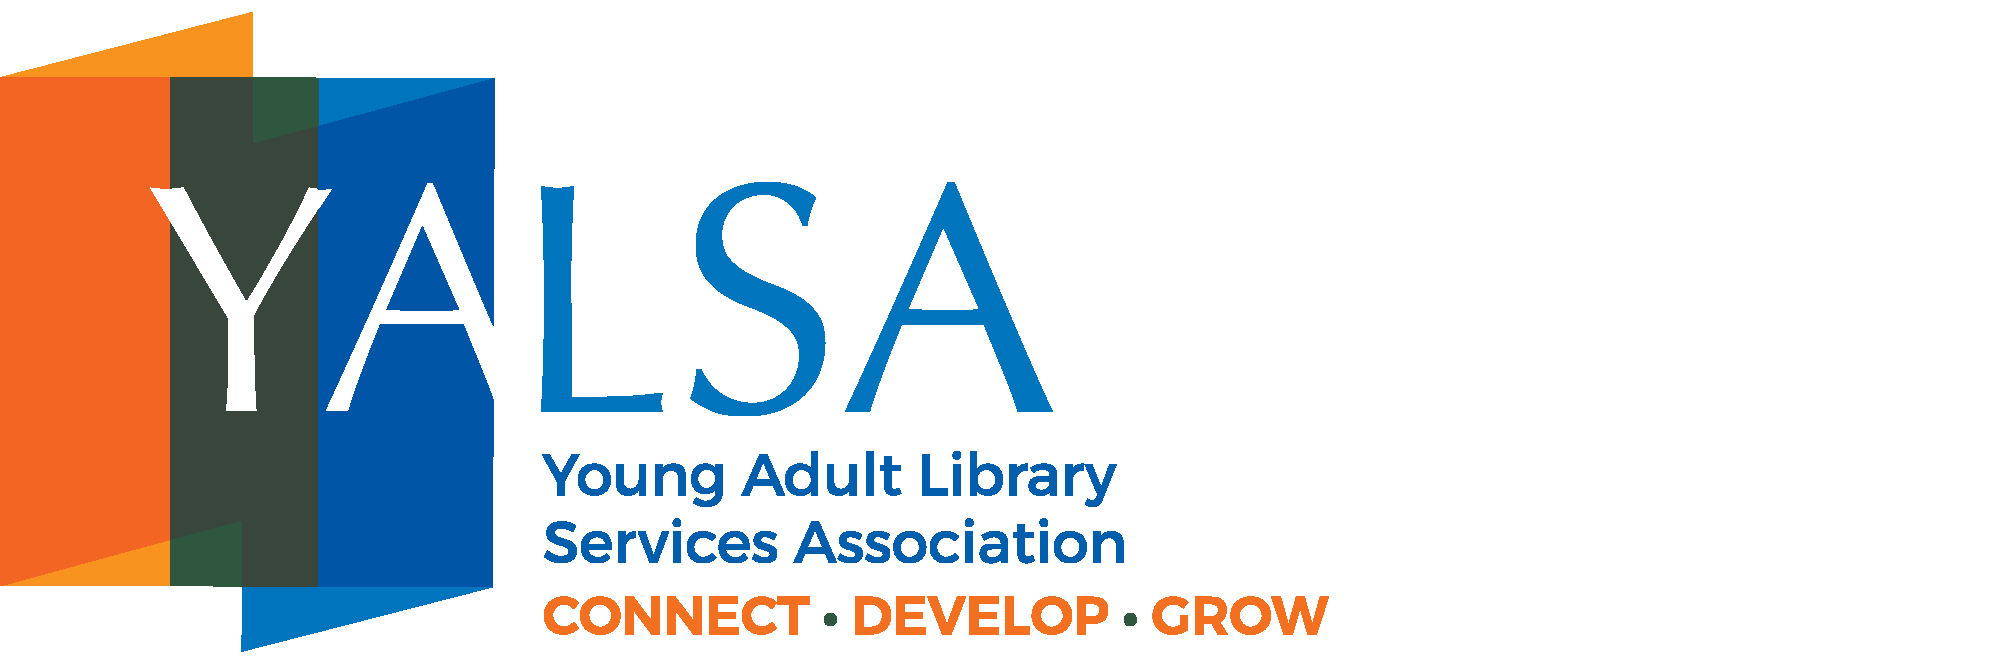 Young Adult Library logo with link to YALSA webpage